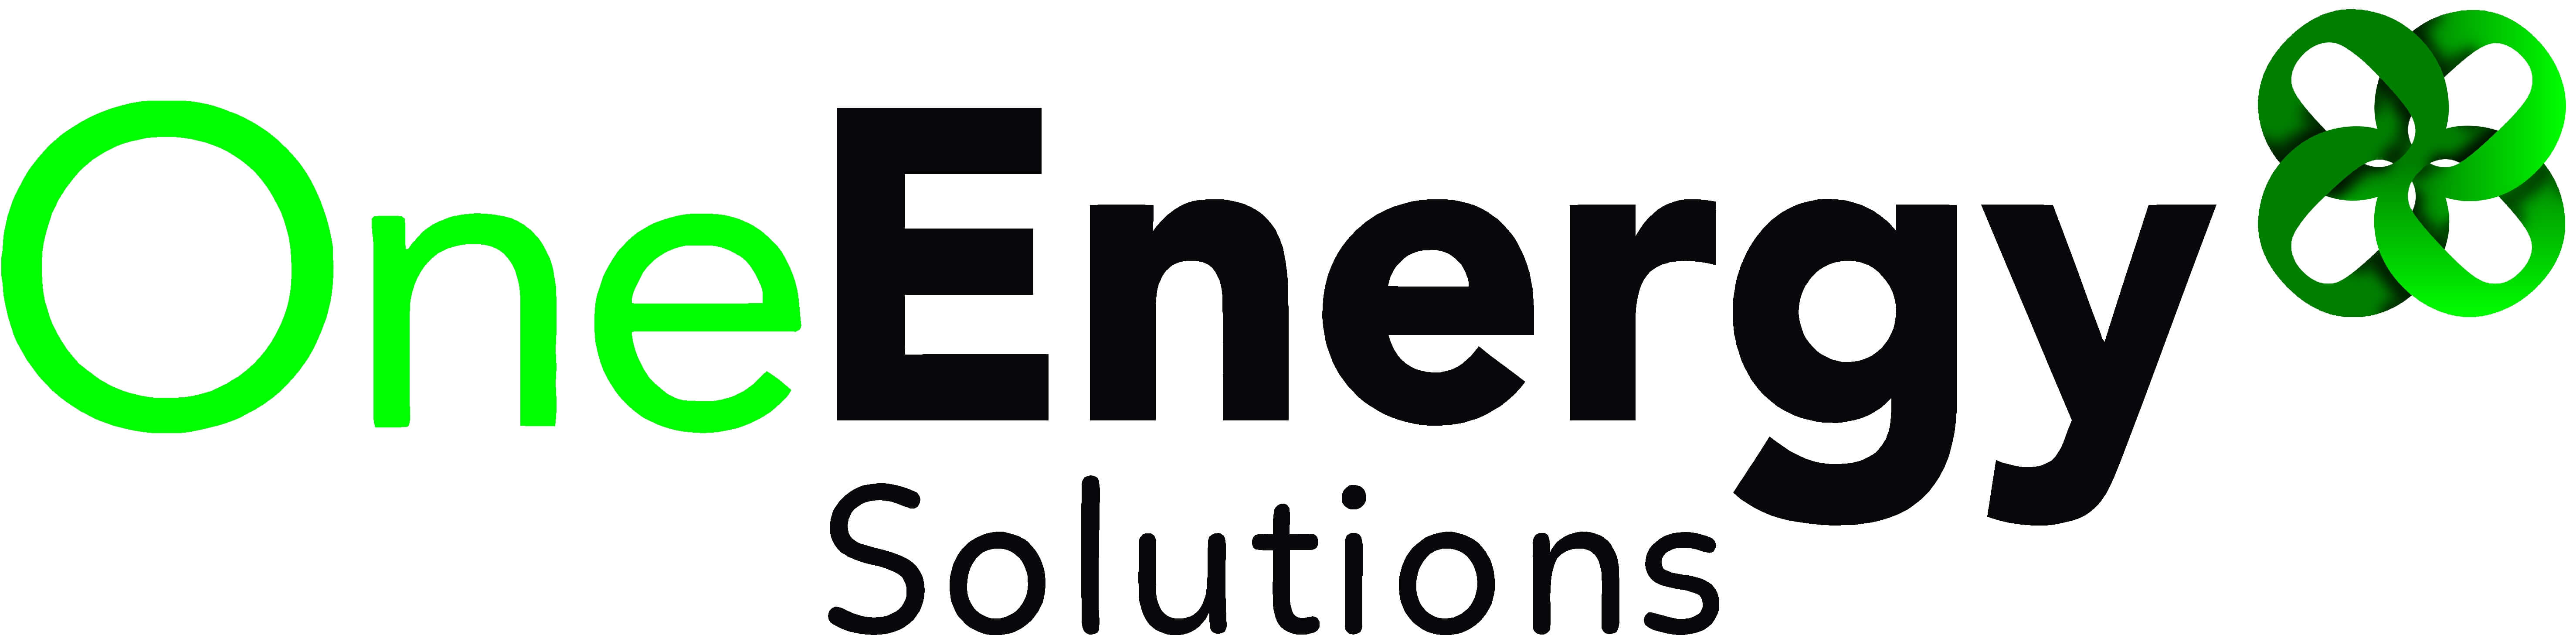 One Energy Solutions